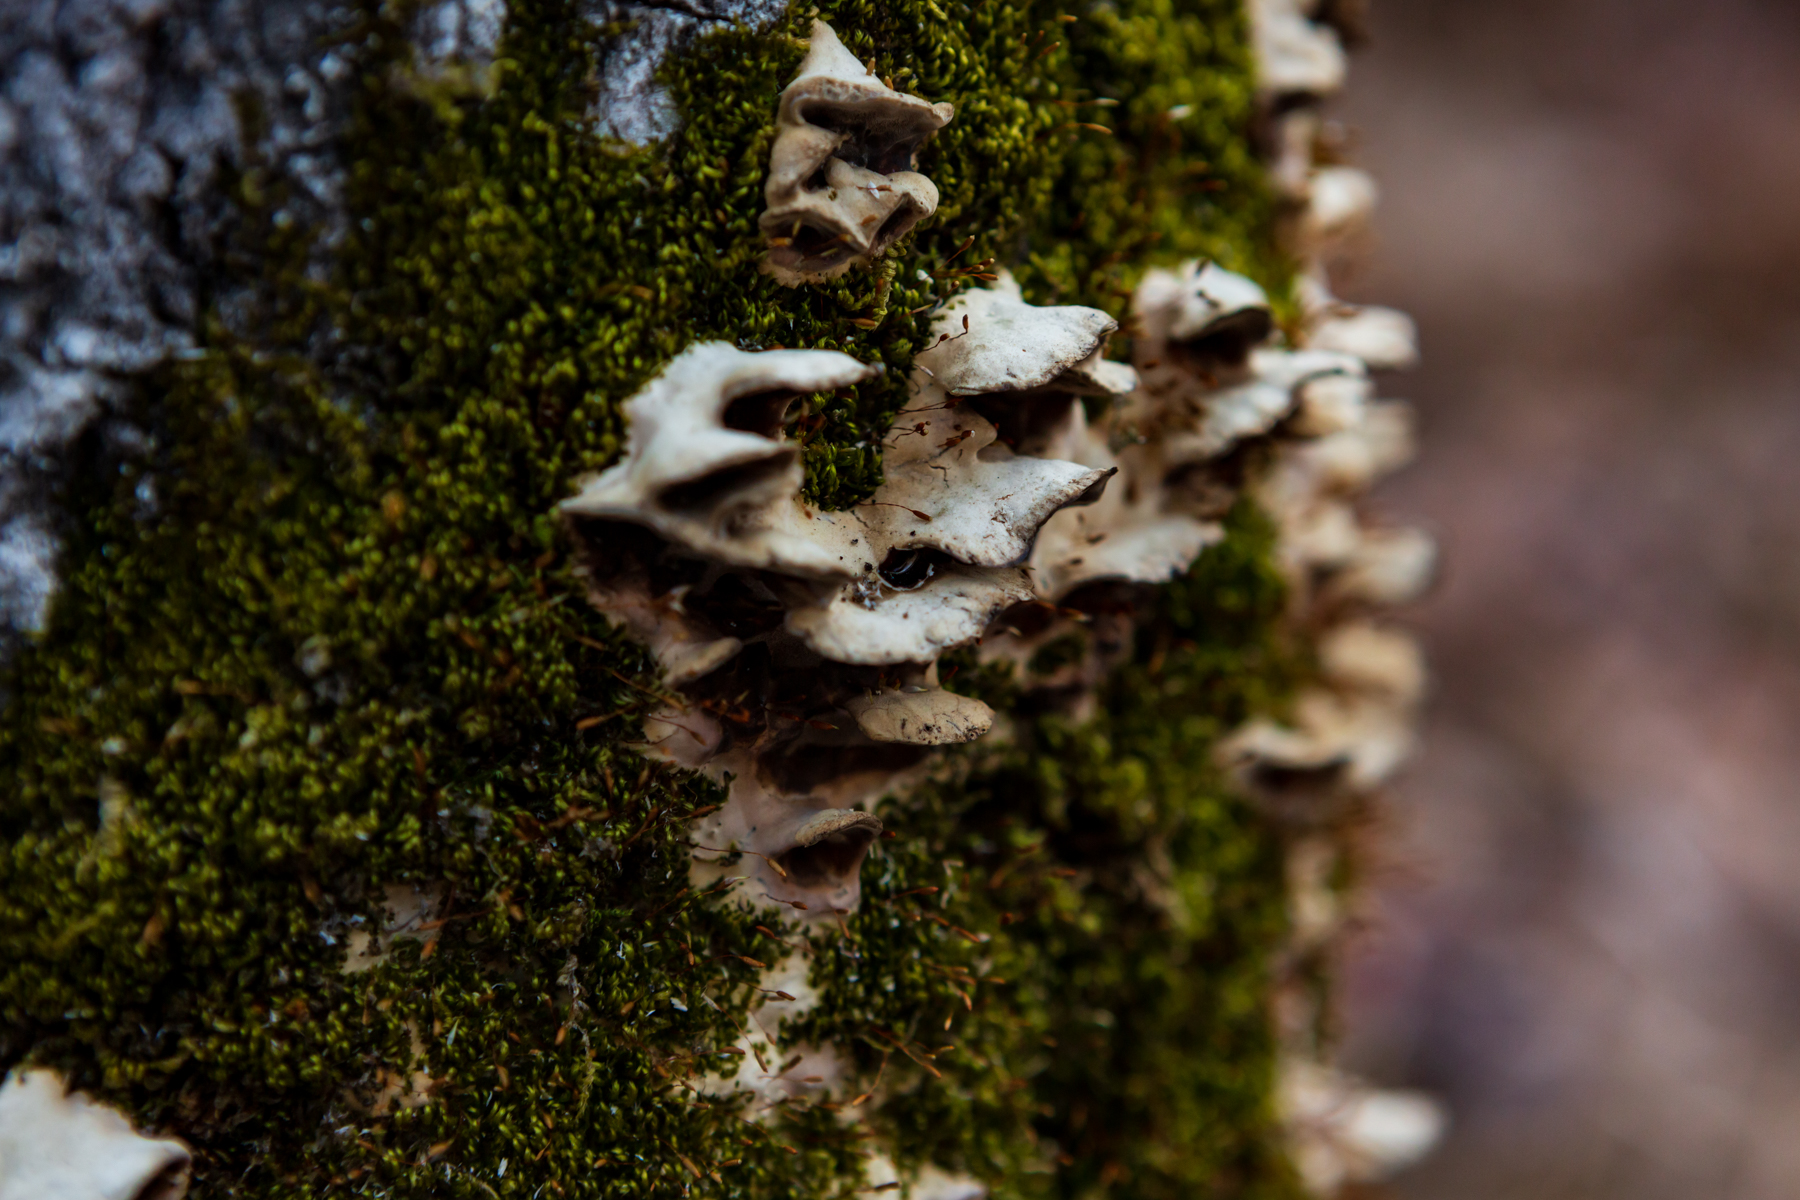 fungi growing on mossy tree